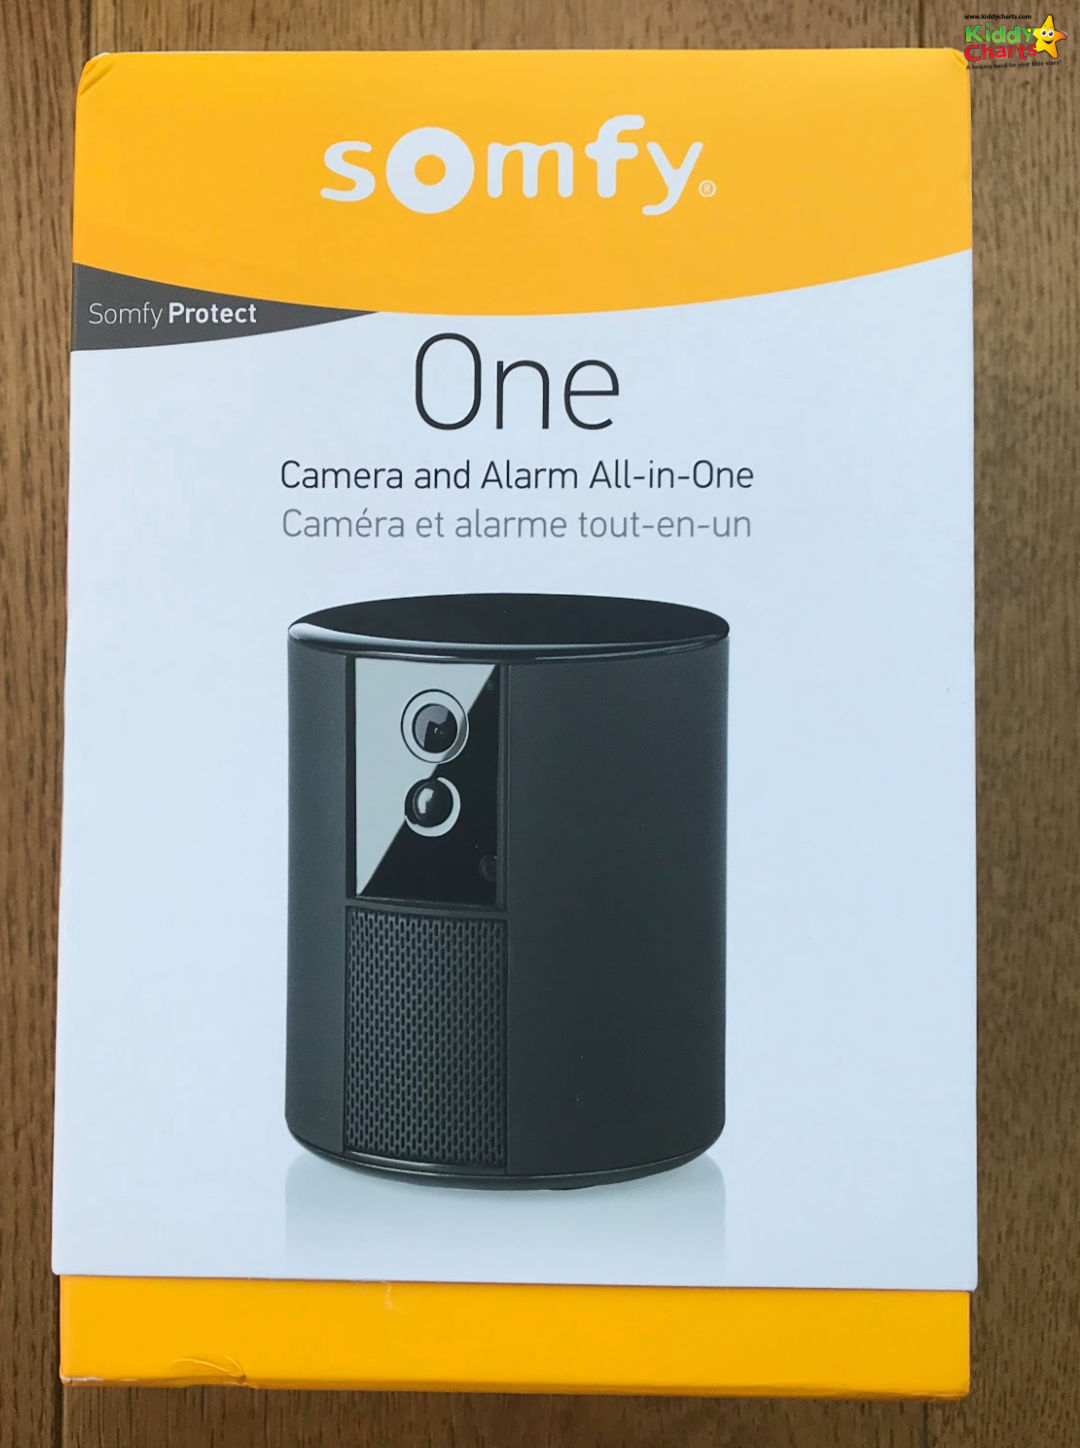 Looking for a modern home secutiry solution - we've got a Somfy One review for you; check it out now, and see if its right for you